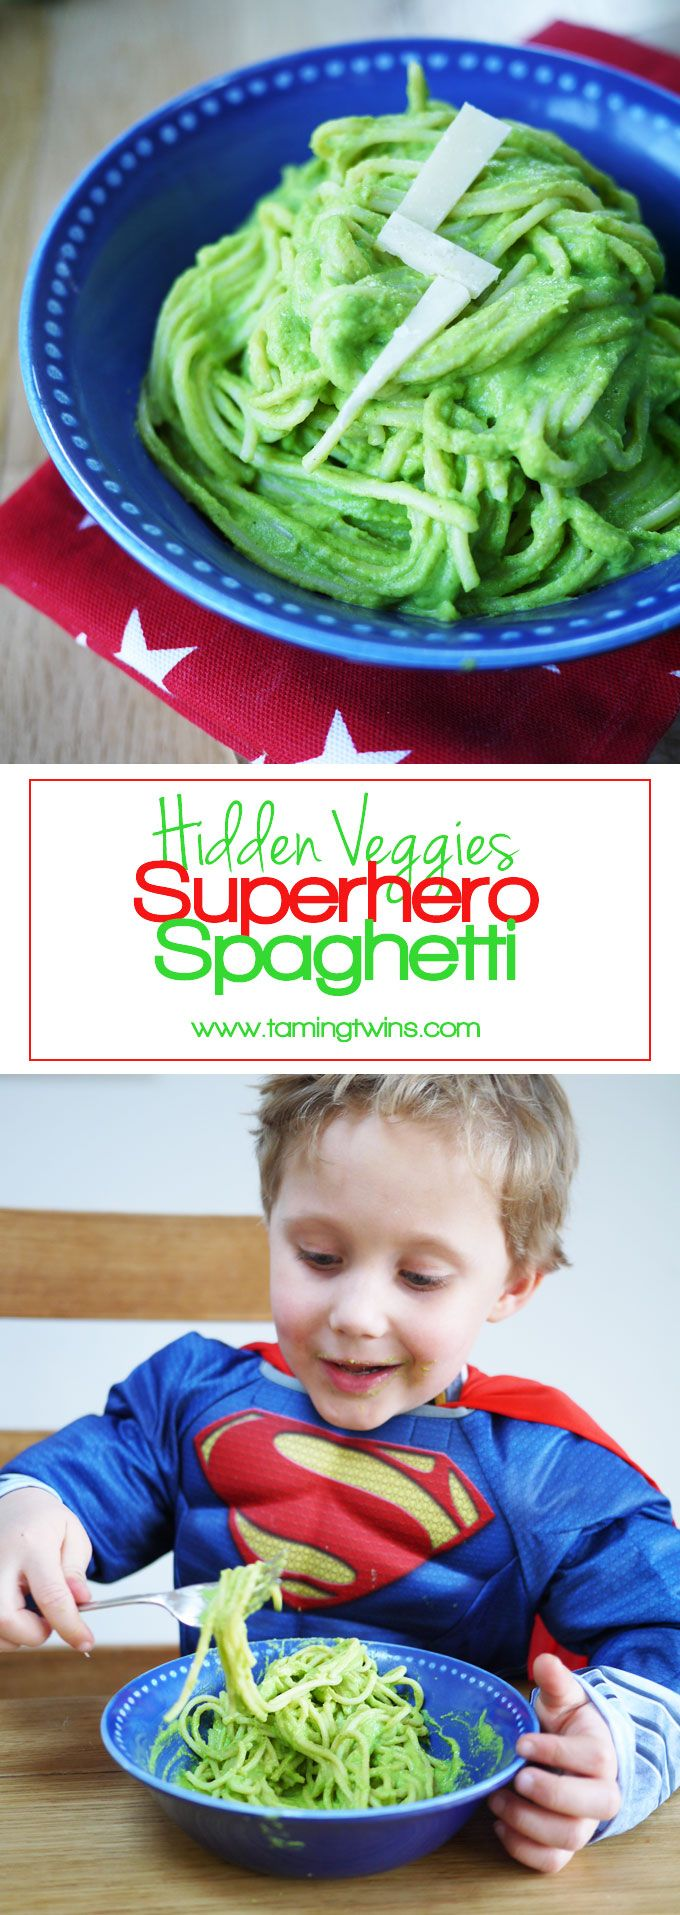 Superhero Hidden Vegetable Pasta Sauce - This may not turn you into Superman, but it reminds us of The Hulk and packed with hidden veggies, that's a superpower right?! A brilliant kids meal for fussy eaters. (Ssshh.. Secretly packed with cauliflower, broc